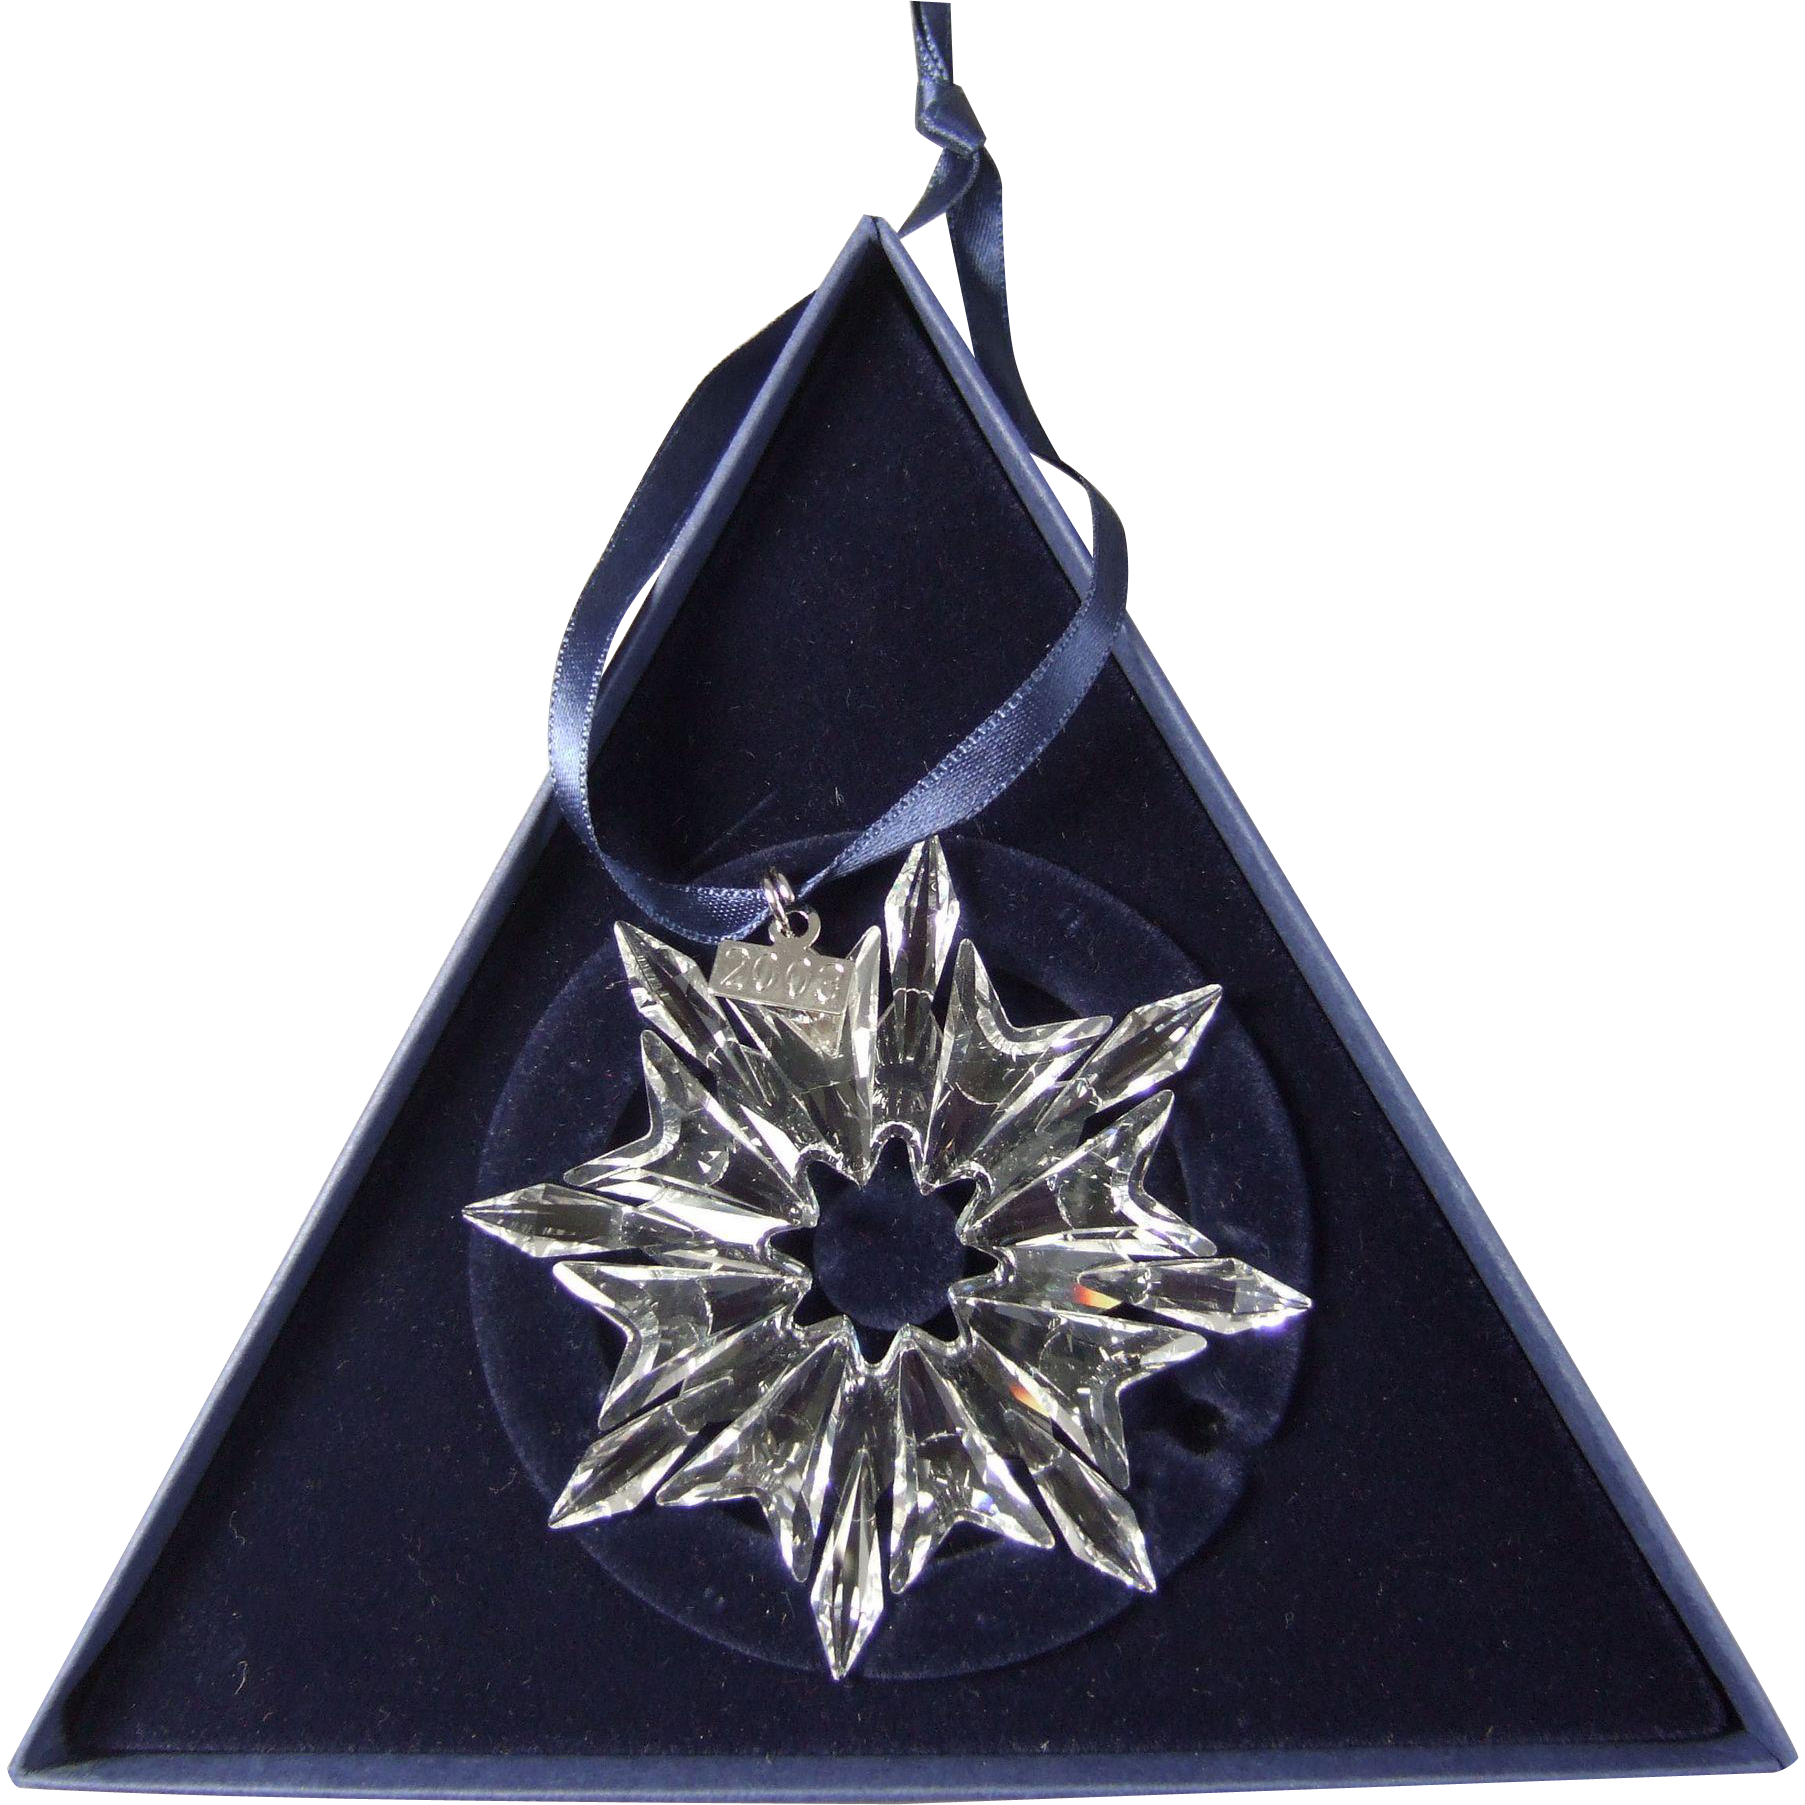 2003 Swarovski Crystal Snowflake Annual Edition Christmas Ornament